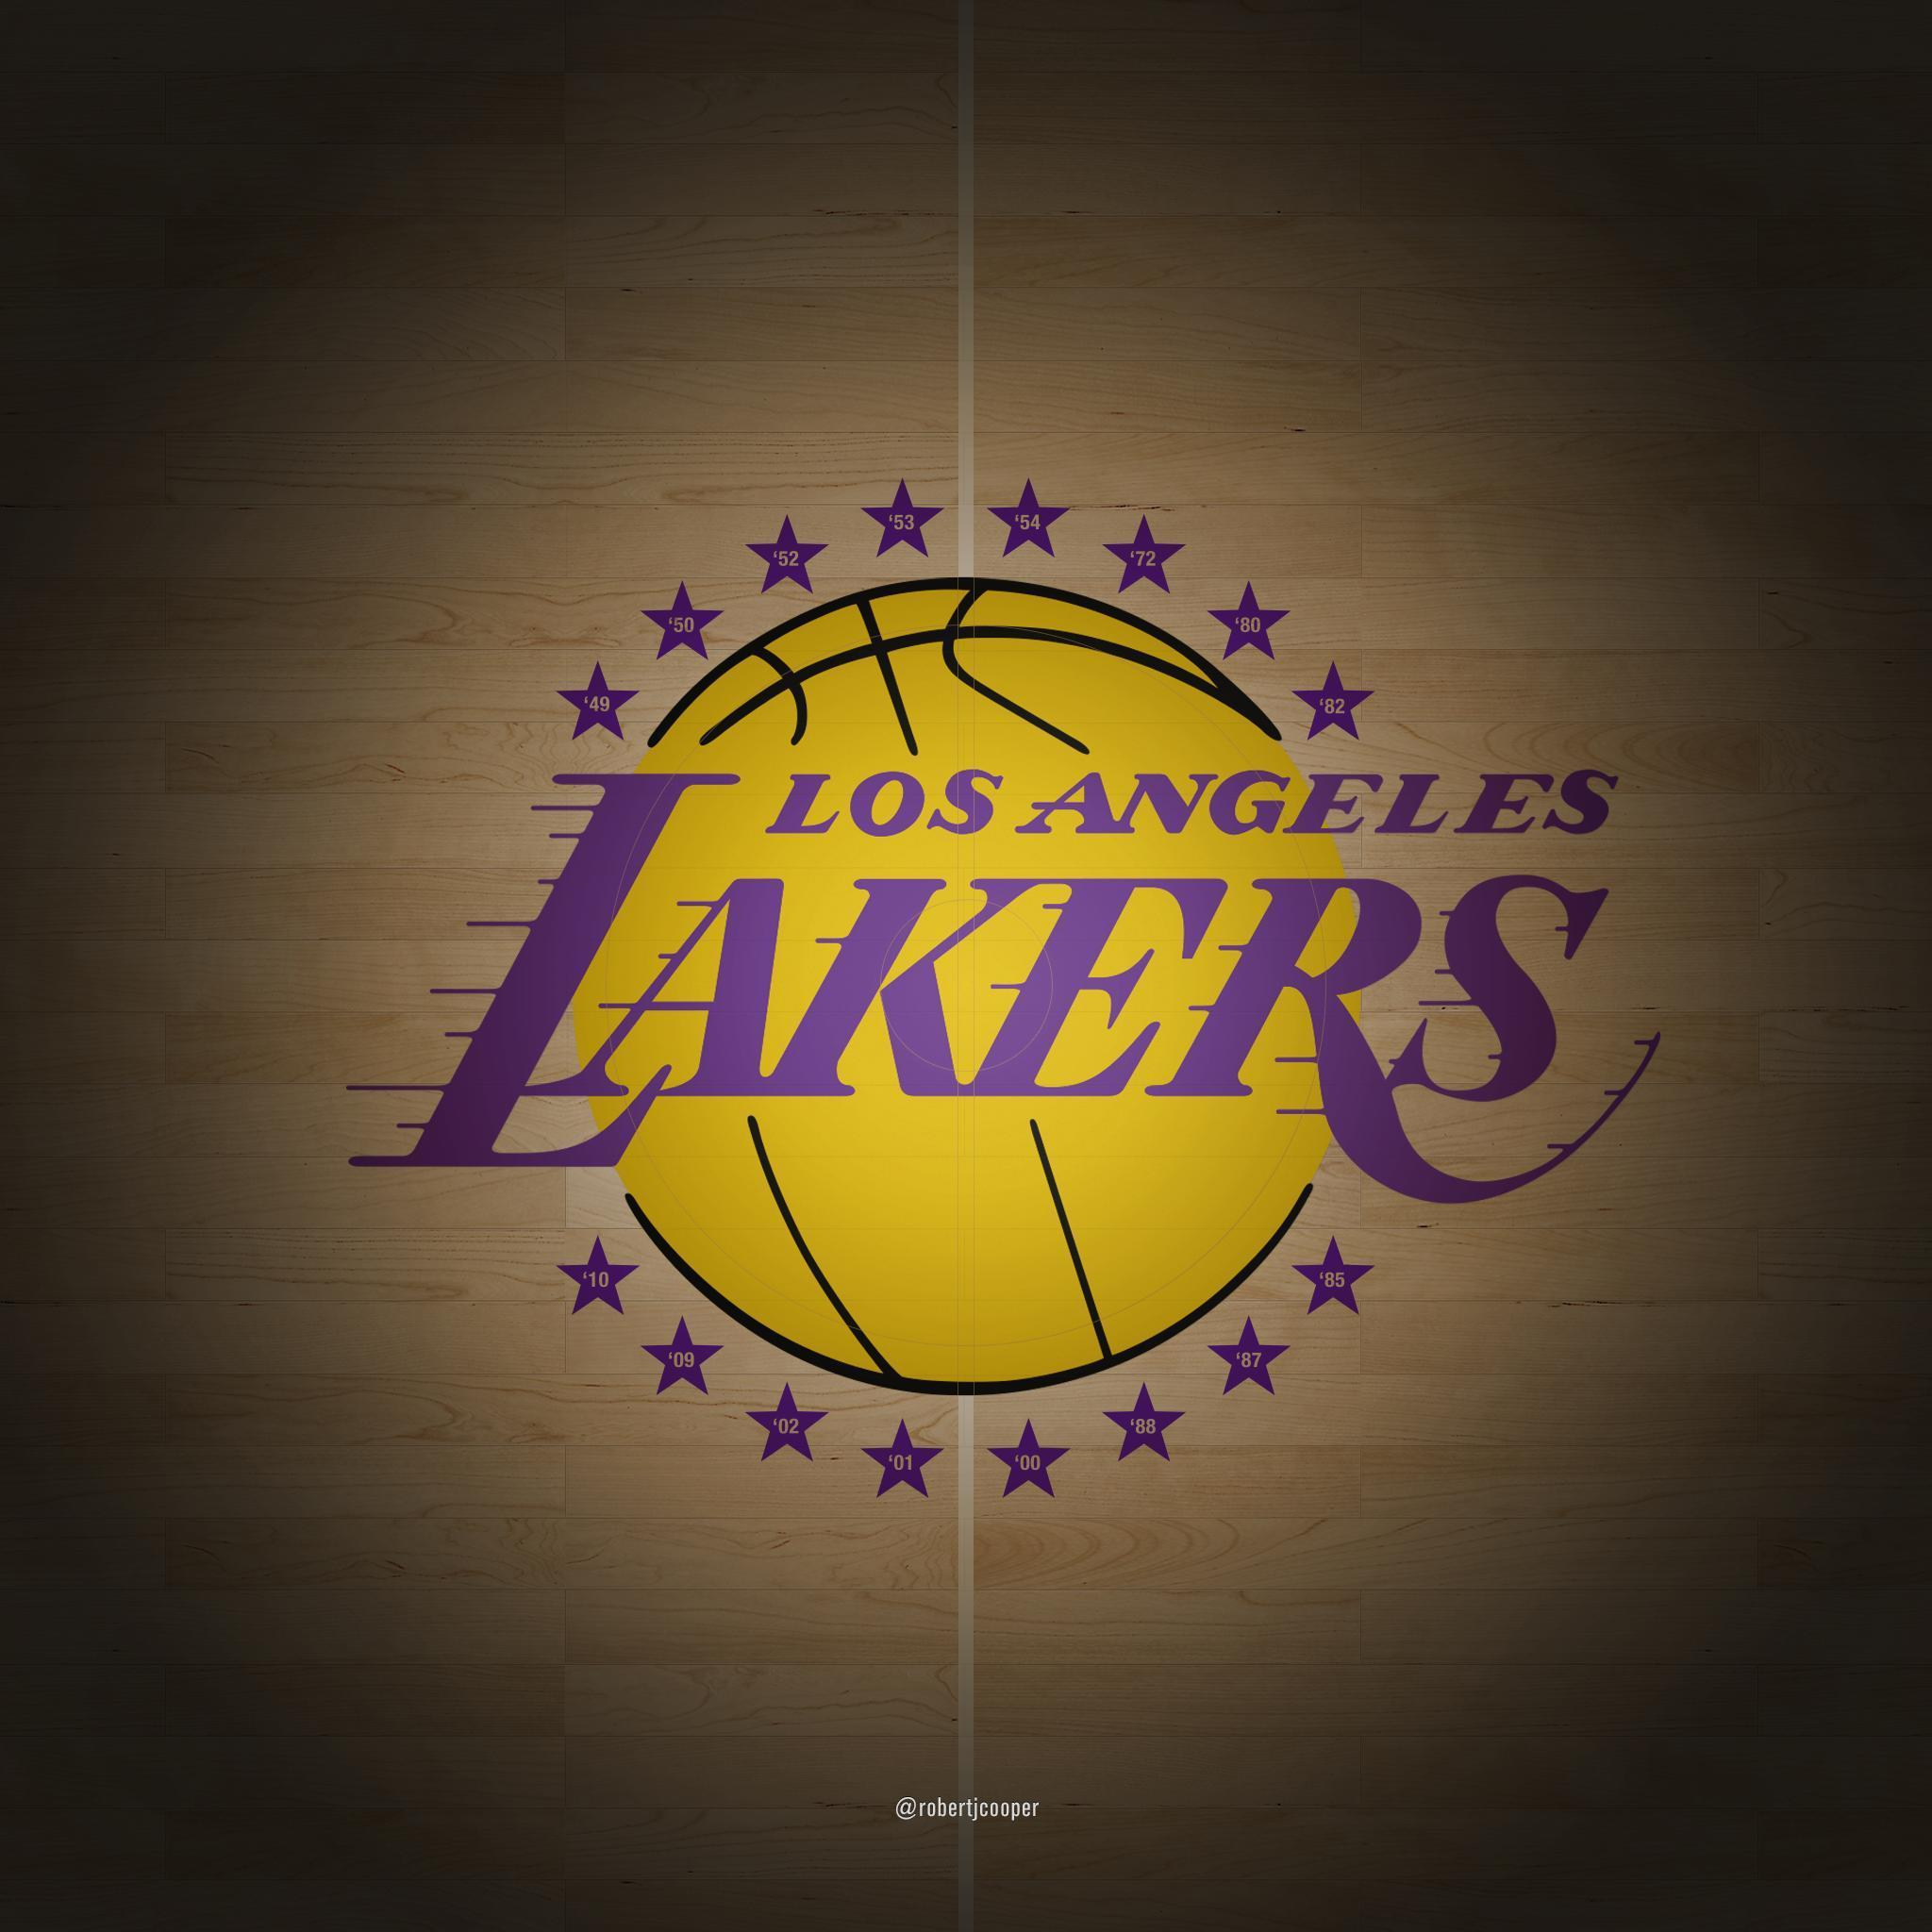 lakers-court-ipad Lakers wallpaper HD free wallpapers backgrounds .